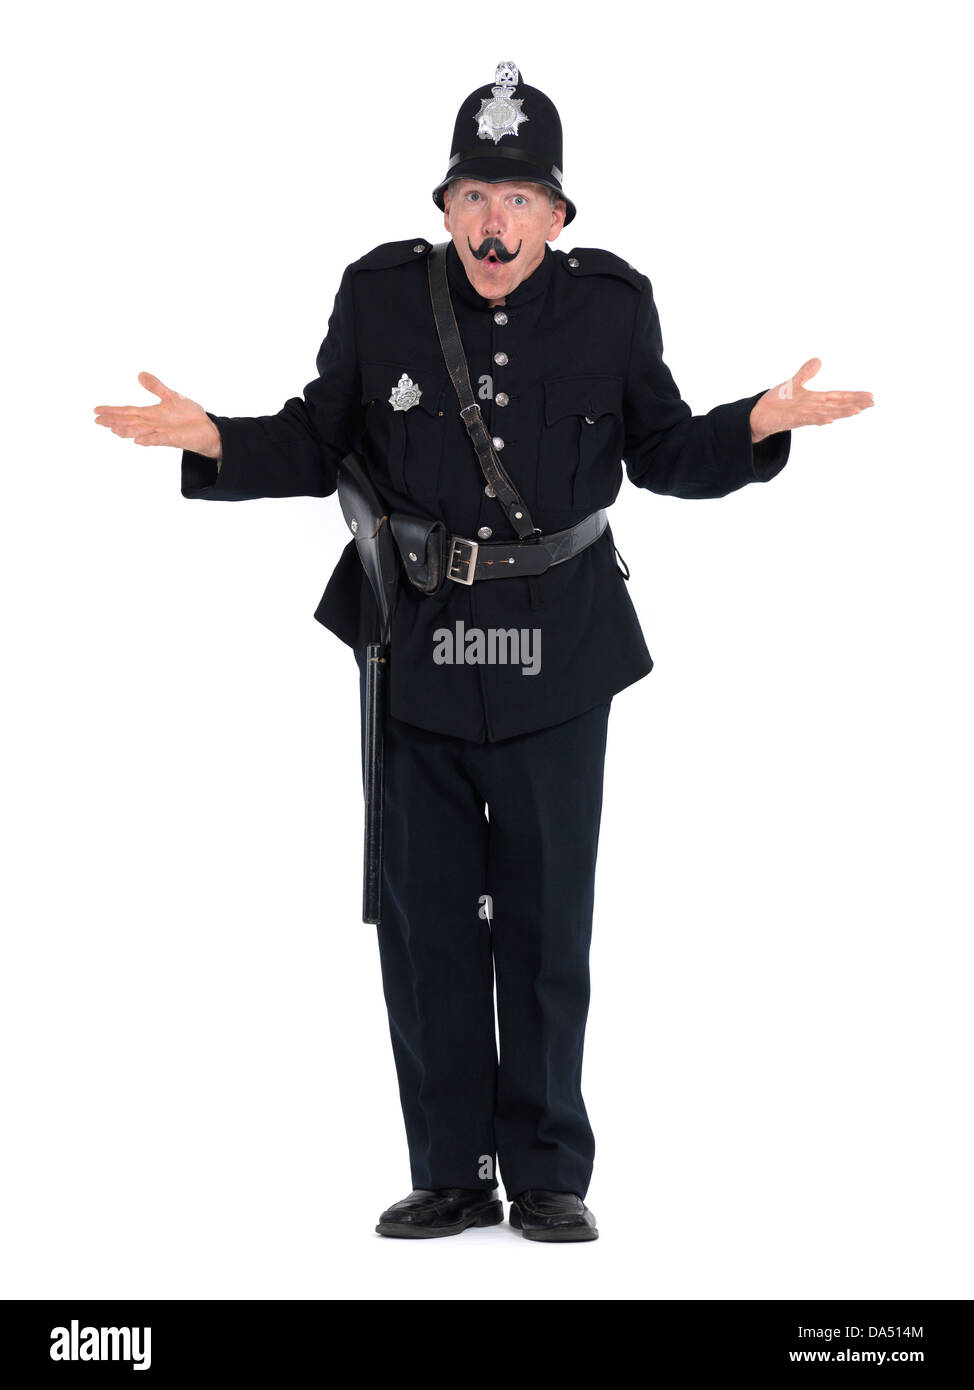 Humorous vintage police officer, keystone cop with funny expression, isolated on white background - Stock Image